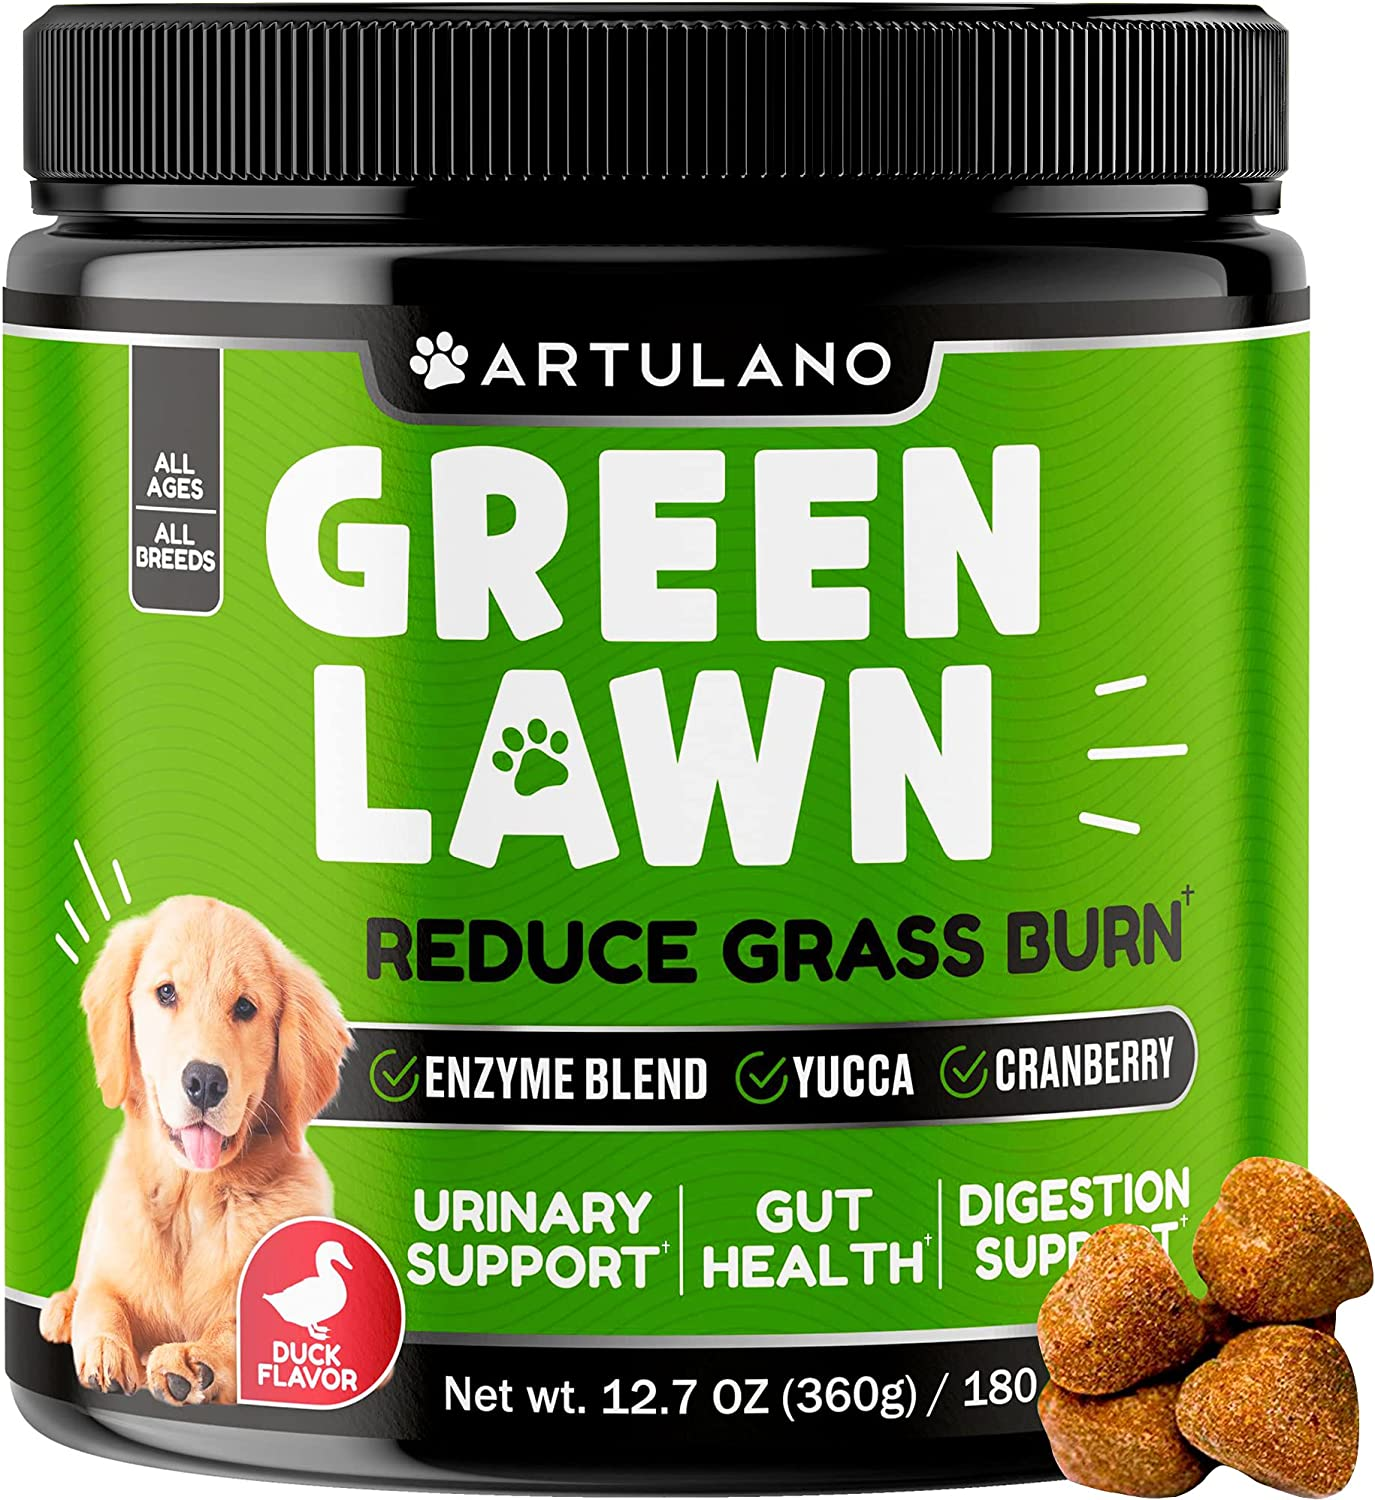 Natural Grass Saver for Dogs - Grass Burn Soft Chews for Lawn Spots Caused by Dog Urine - Dog Chew Treats for Urinary Tract, Bladder, Gut Health with Apple Cider Vinegar, Cranberry, Enzyme Blend